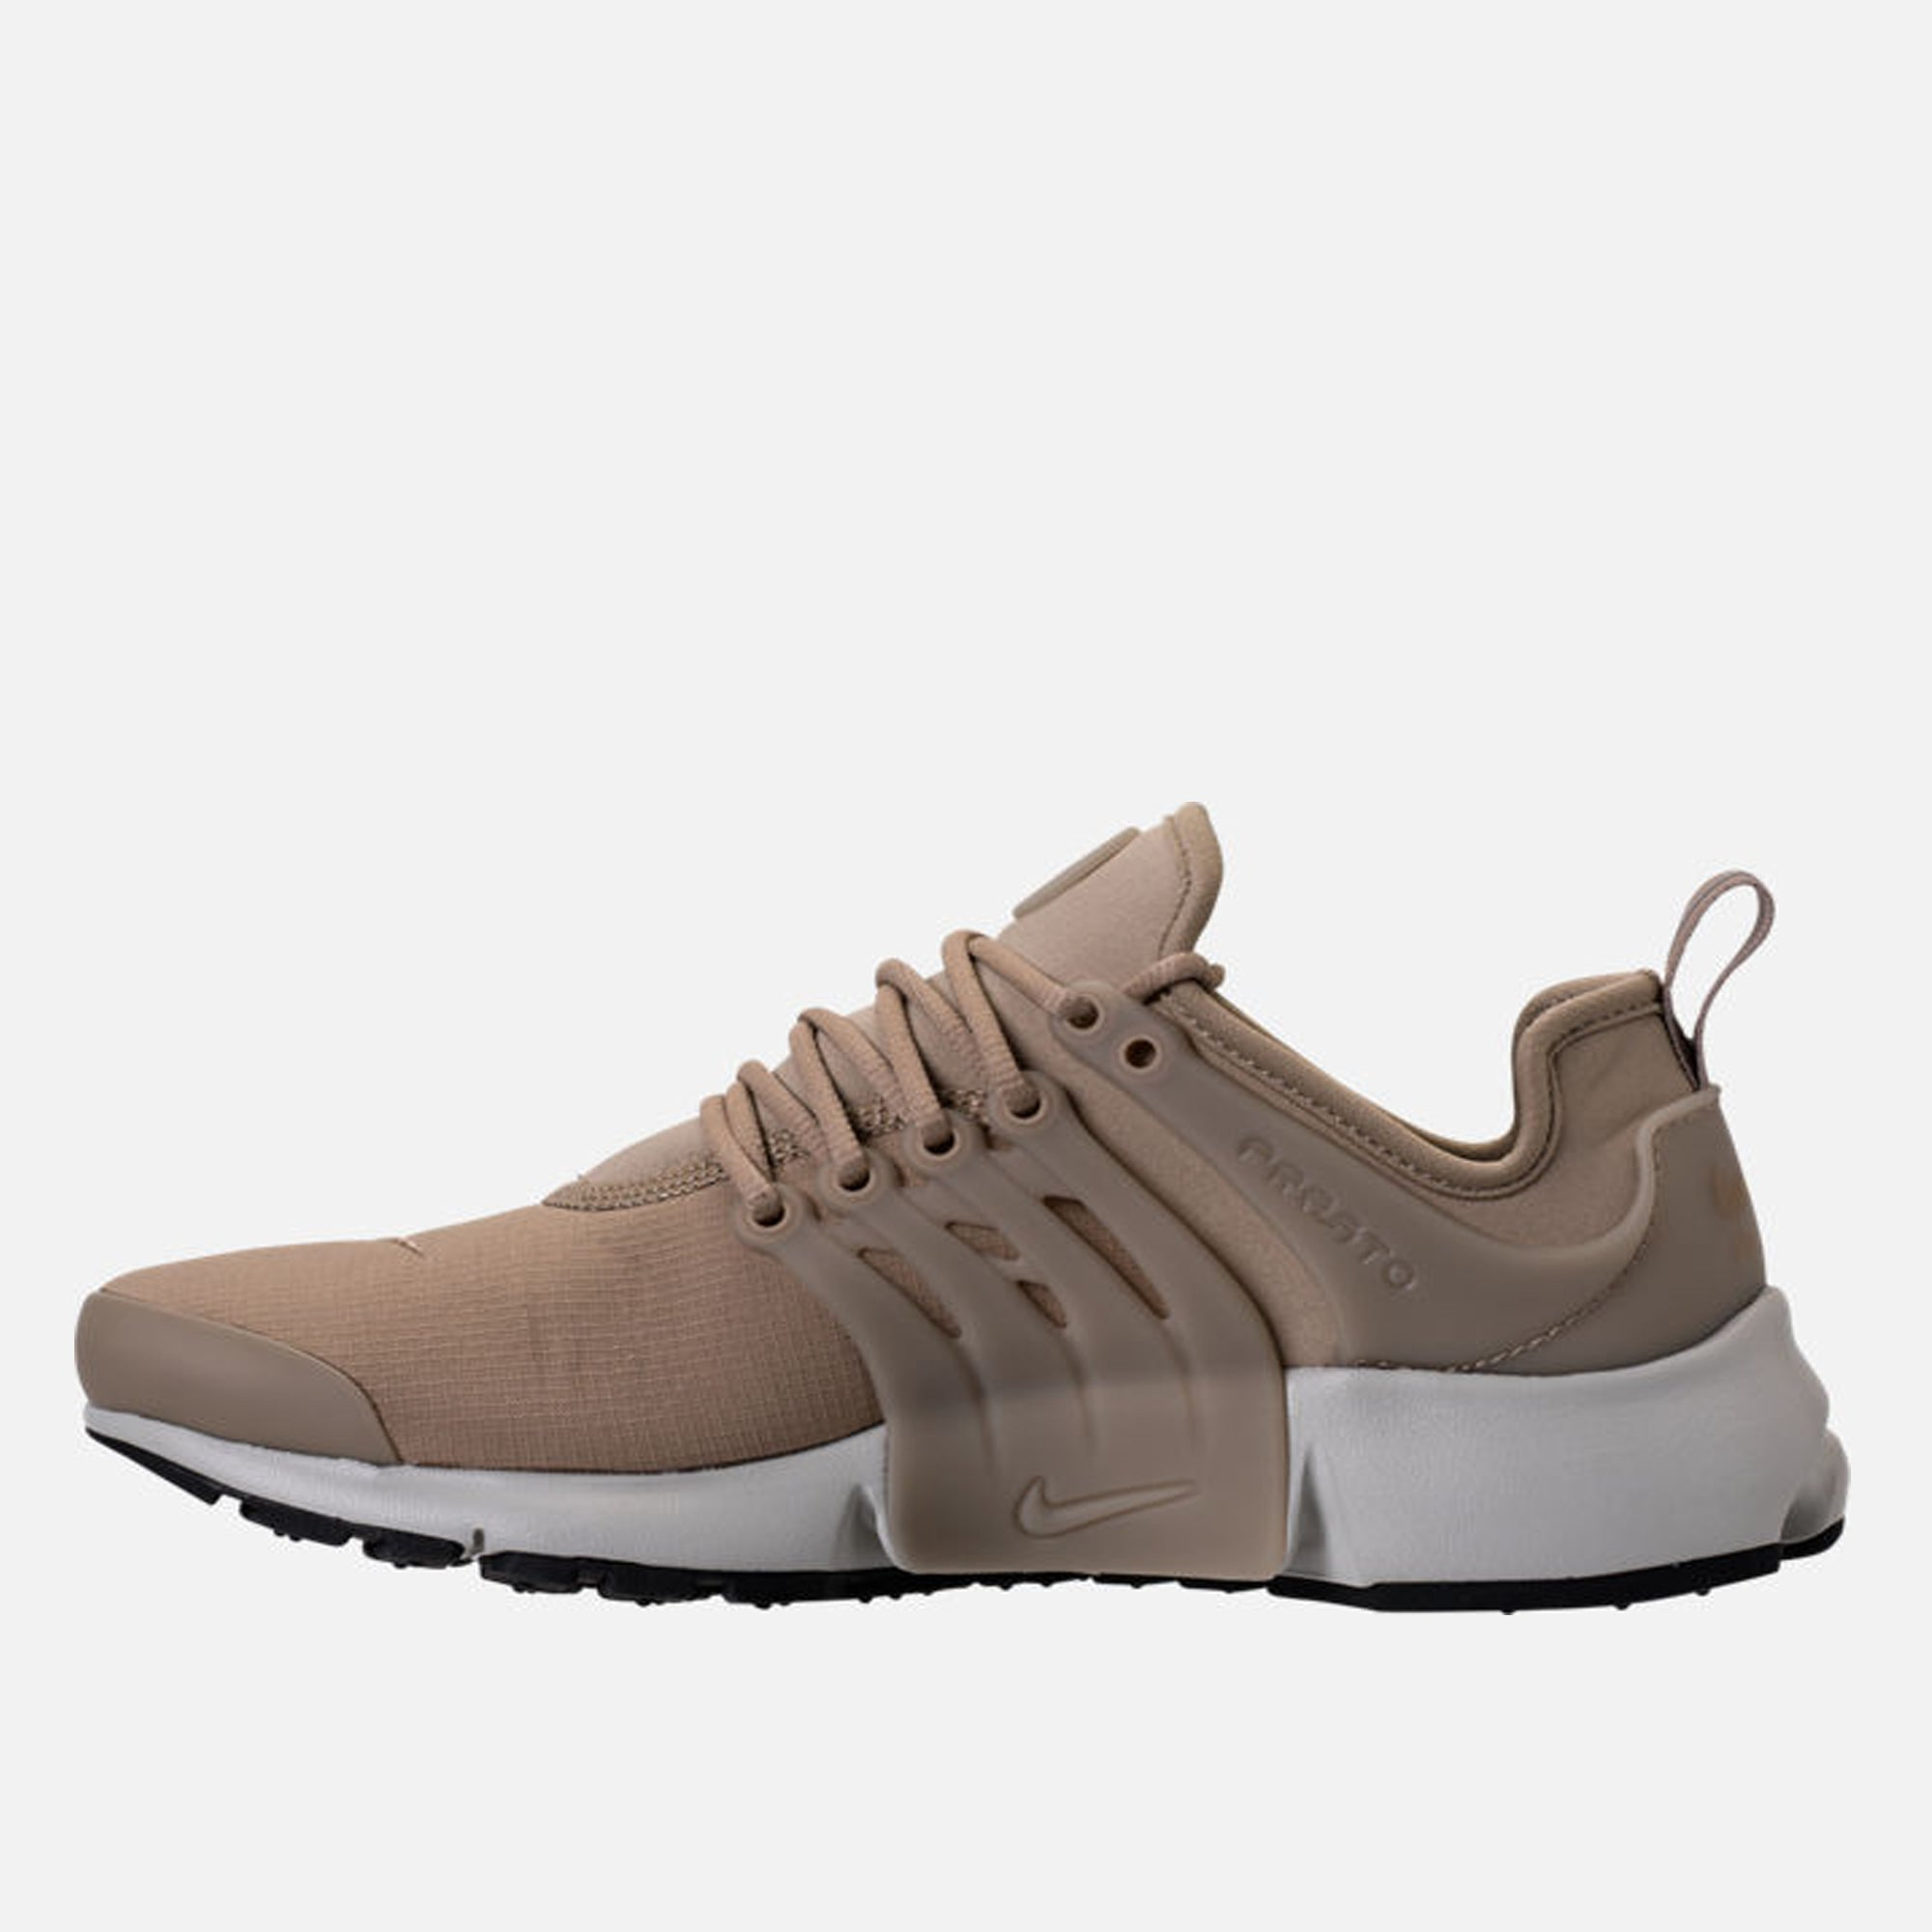 215236db6b Women_s_Nike_AIR_Presto_TD_Casual_Shoes_Khaki_Pale_Grey-4.jpg